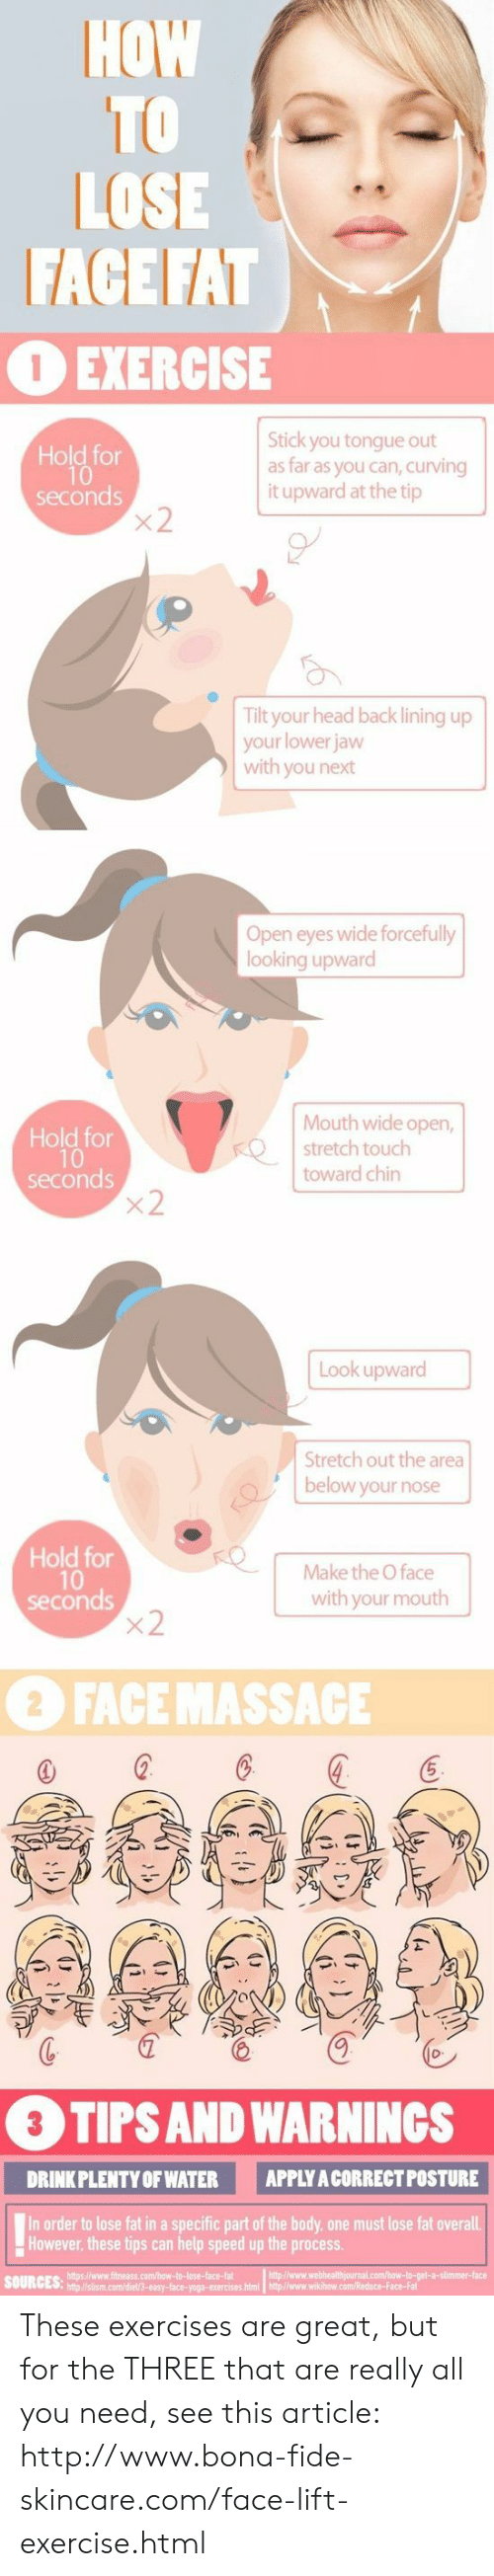 Head, Exercise, and Help: HOW  TO  LOSE  FACE FAT  OEXERCISE  Stick you tongue out  as far as you can, curving  it upward at the tip  Hold for  seconds  x2  Tilt your head back lining up  your lower jaw  with you next  Open eyes wide forcefully  looking upward  Mouth wide open,  stretch touch  Hold for  10  seconds  x2  toward chin  Look upward  Stretch out the area  below your nose  Hold for  10  seconds  x2  Make the O face  with your mouth  2 FACE MASSACE  3 TIPS AND WARNINGS  APPLY A CORRECT POSTURE  DRINK PLENTY OF WATER  In order to lose fat in a specific part of the body, one must lose fat overall  However, these tips can help speed up the process  AK These exercises are great, but for the THREE that are really all you need, see this article: http://www.bona-fide-skincare.com/face-lift-exercise.html